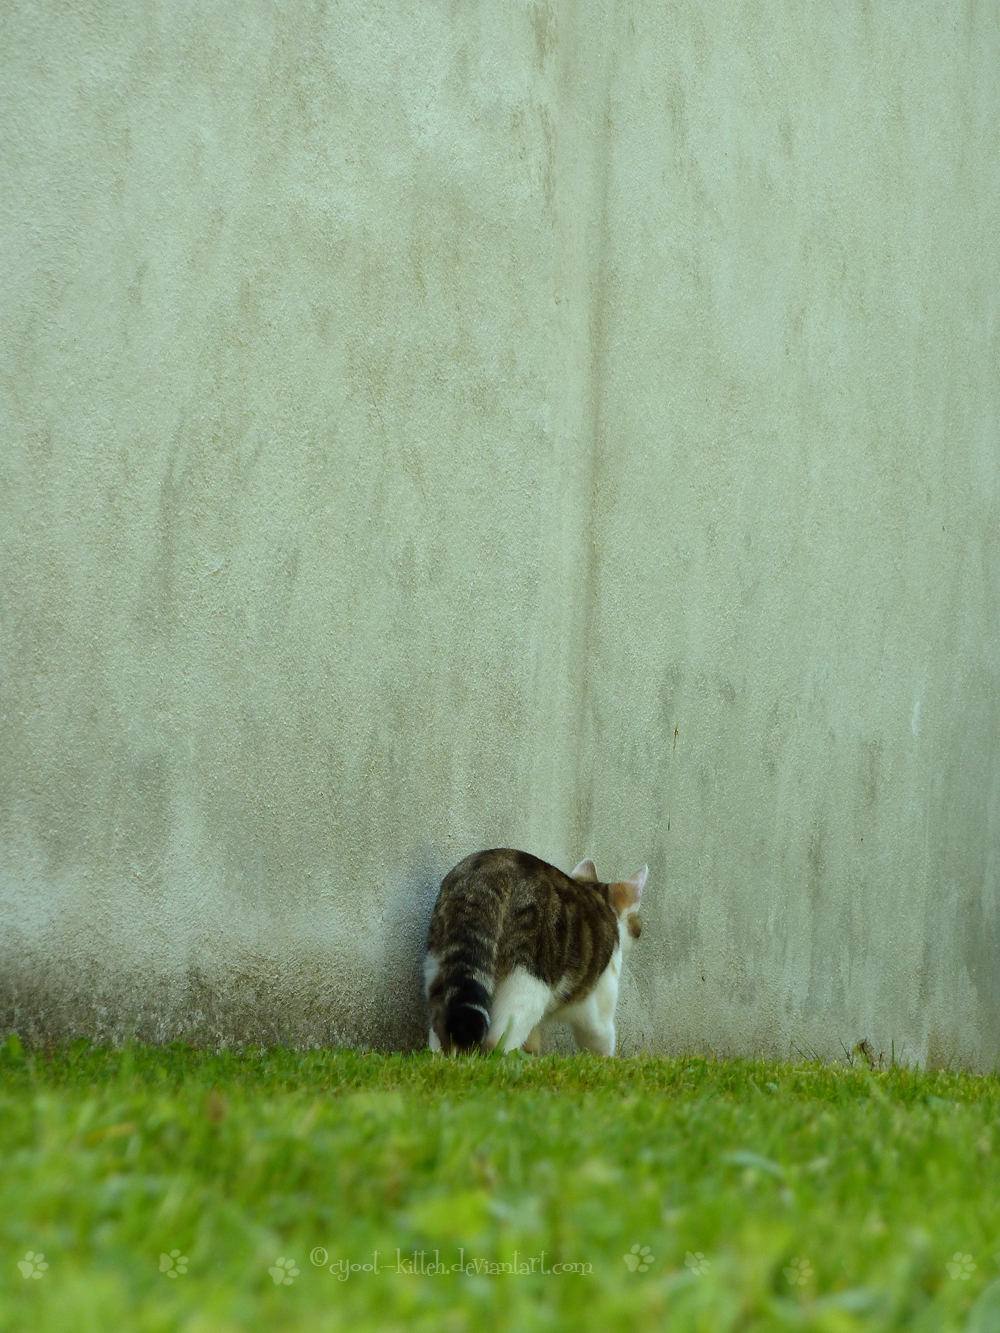 Nos bebêtes The_cat_who_walks_by_himself_by_cyoot_kitteh-d3dhuyq